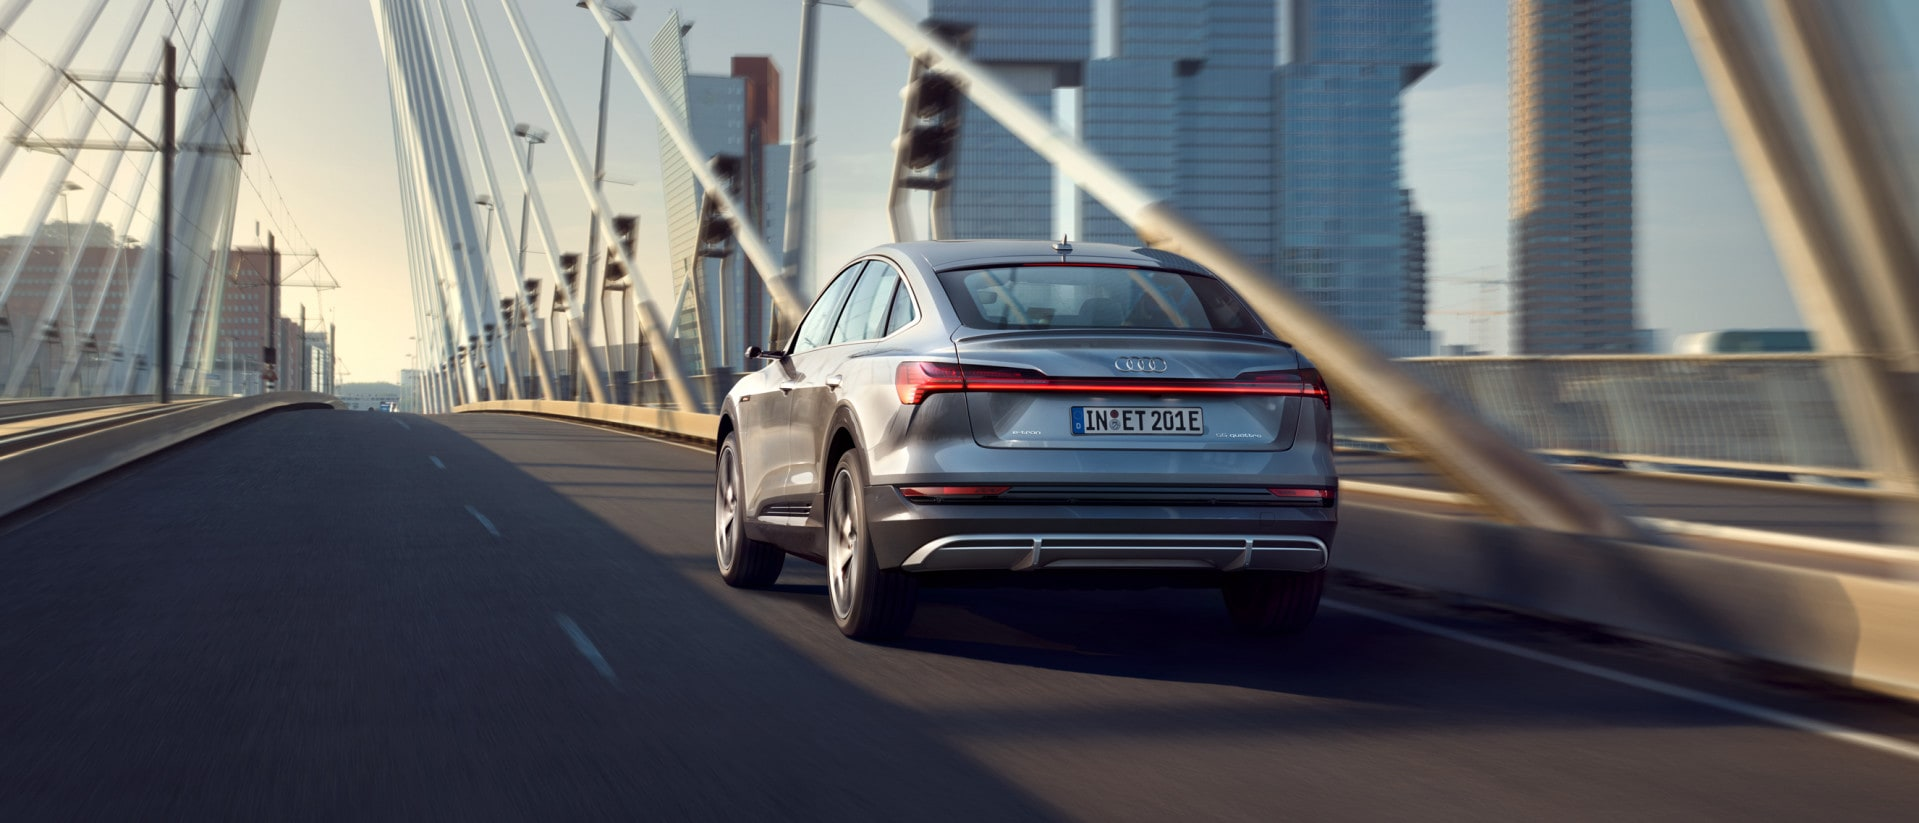 Audi e-tron Sportback on a bridge